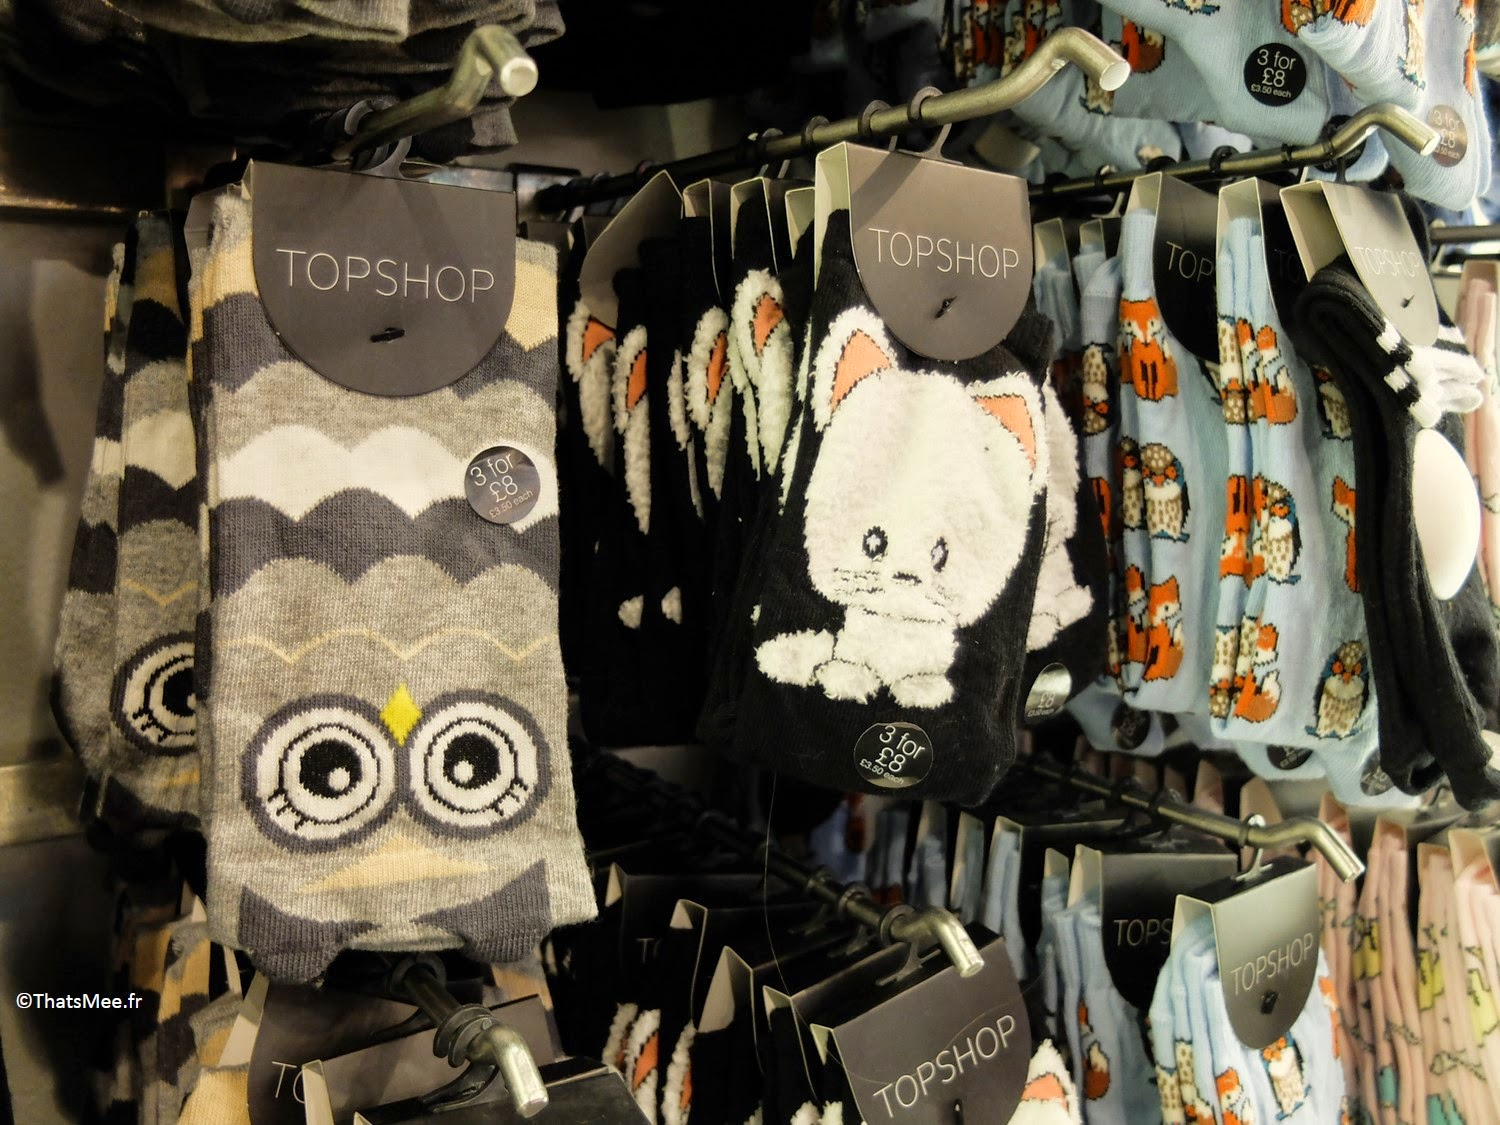 Chaussettes ridicool Hibou chat renard Topshop Londres Picadilly Oxford Street